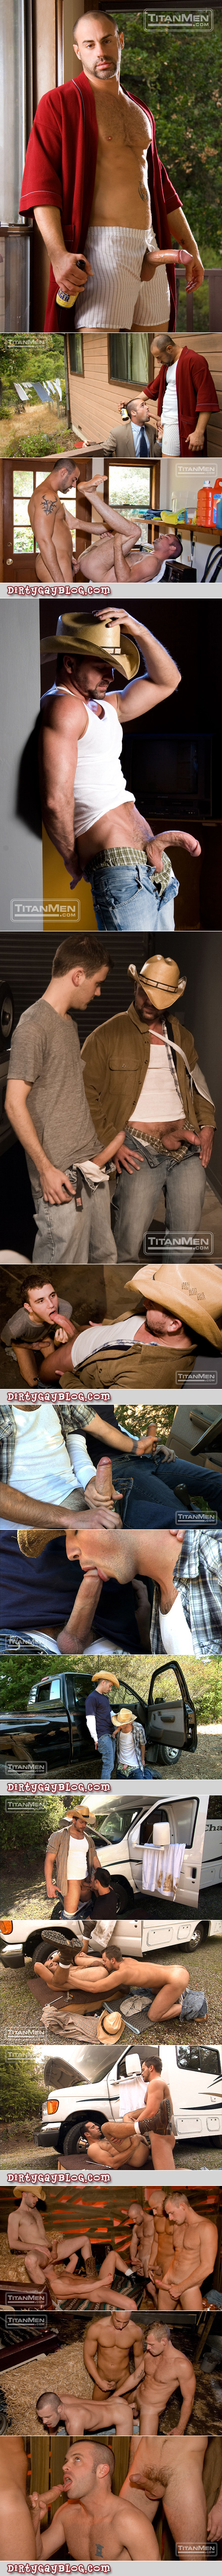 Compilation of gay redneck sex scenes.